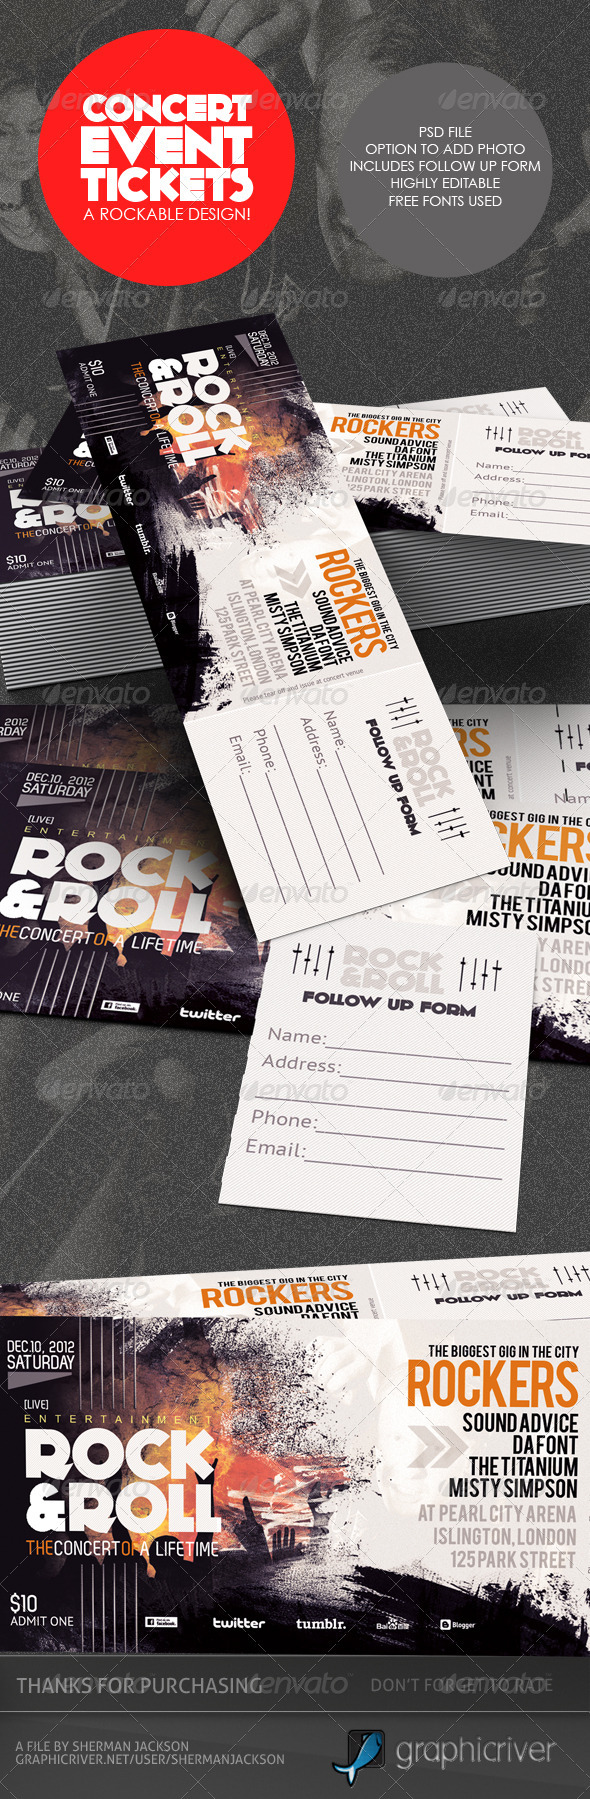 GraphicRiver Concert & Event Tickets Passes Version 1 3471139